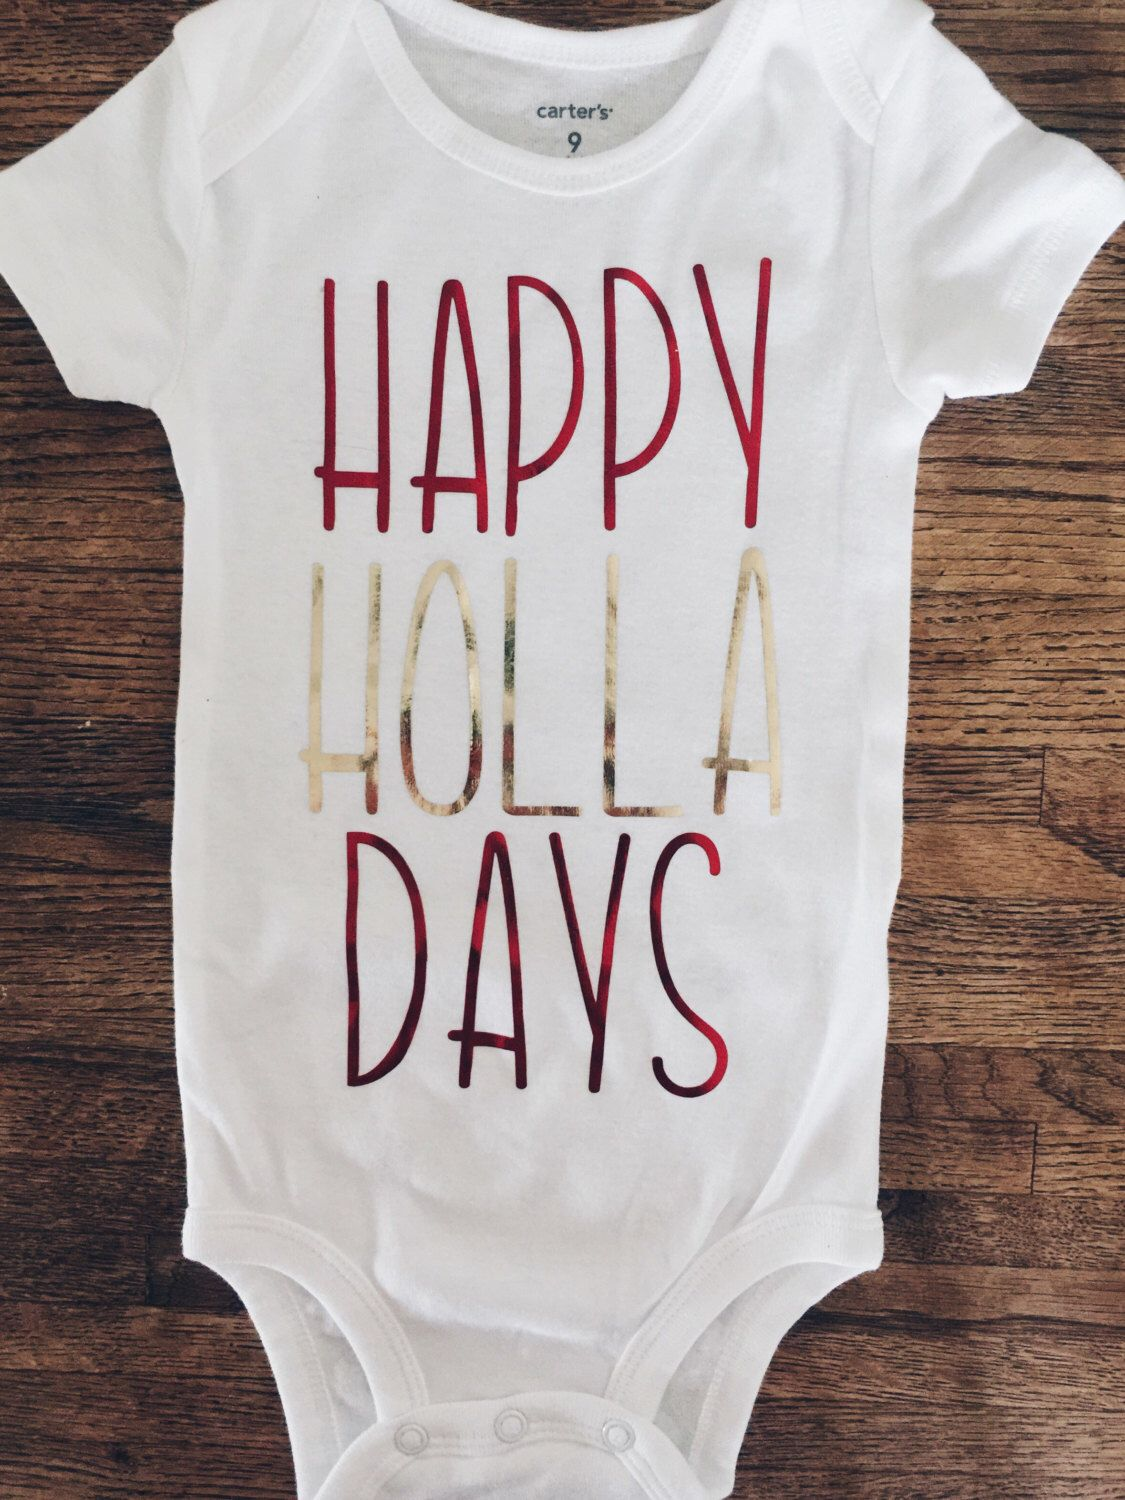 happy holla day onesie happy holiday onesie christmas onesie baby holiday outfit